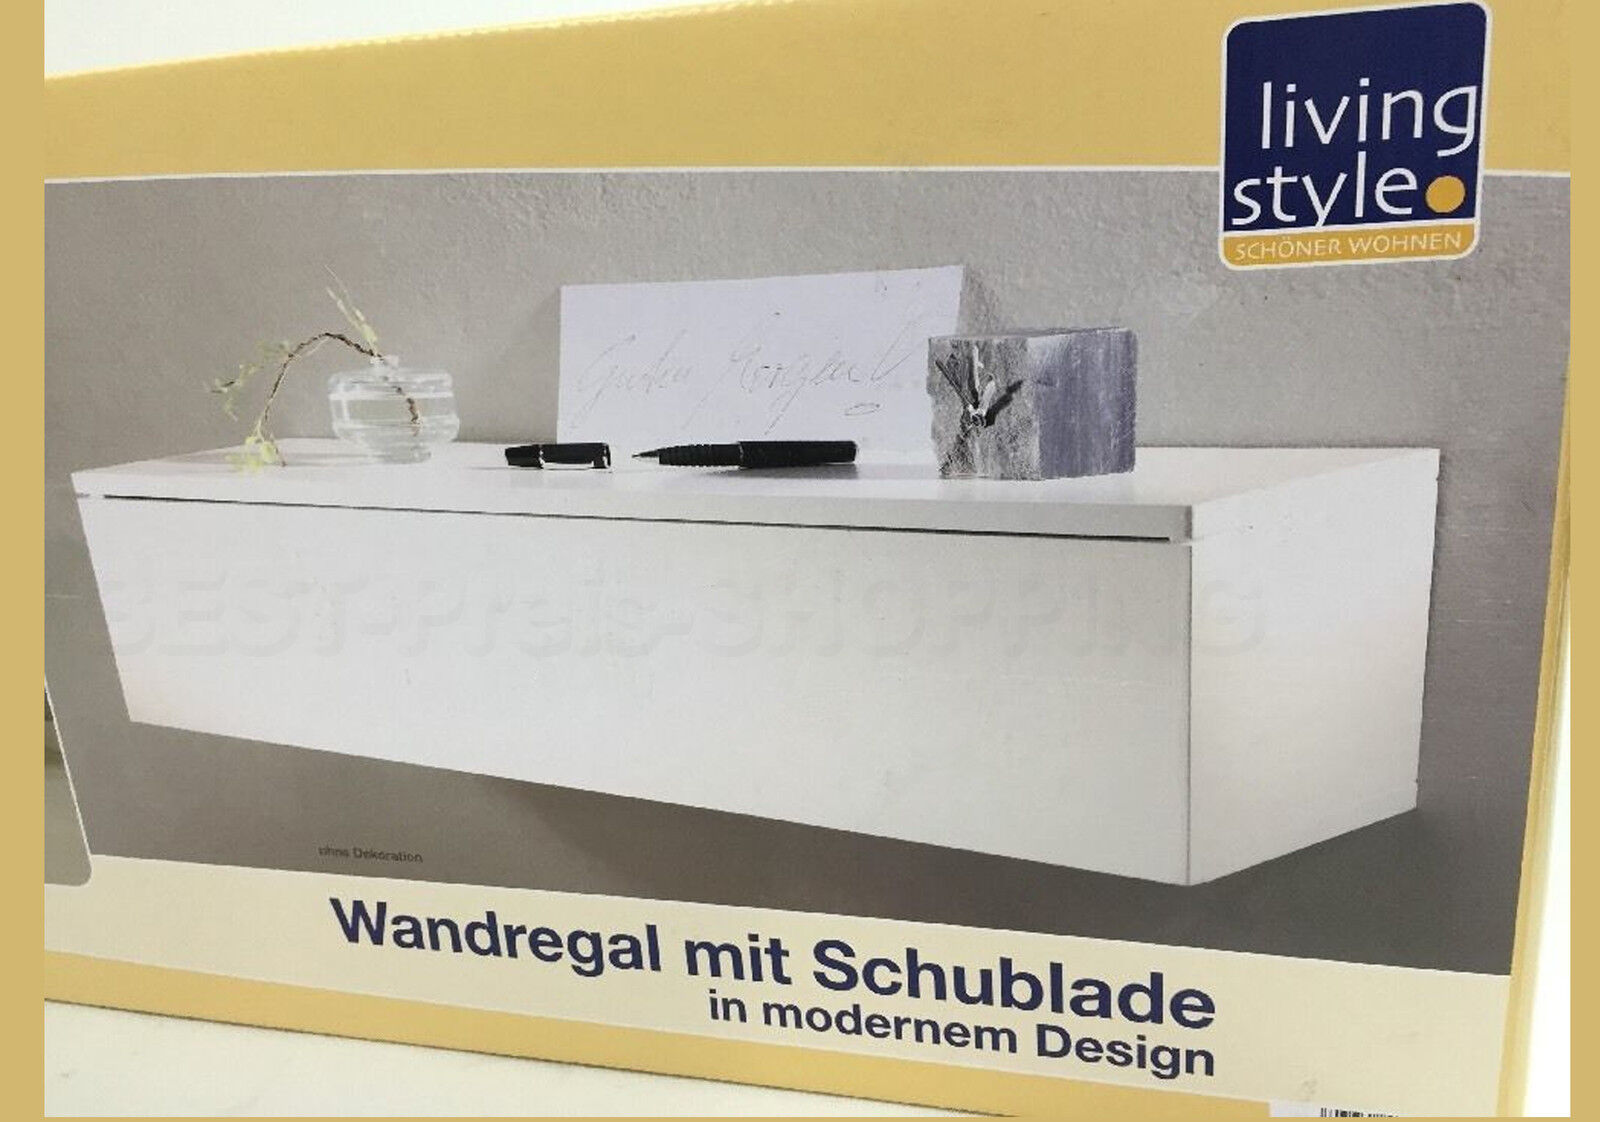 regal wandboard wandschublade konsole regal mit schublade weiss 60x23x15 cm neu ebay. Black Bedroom Furniture Sets. Home Design Ideas